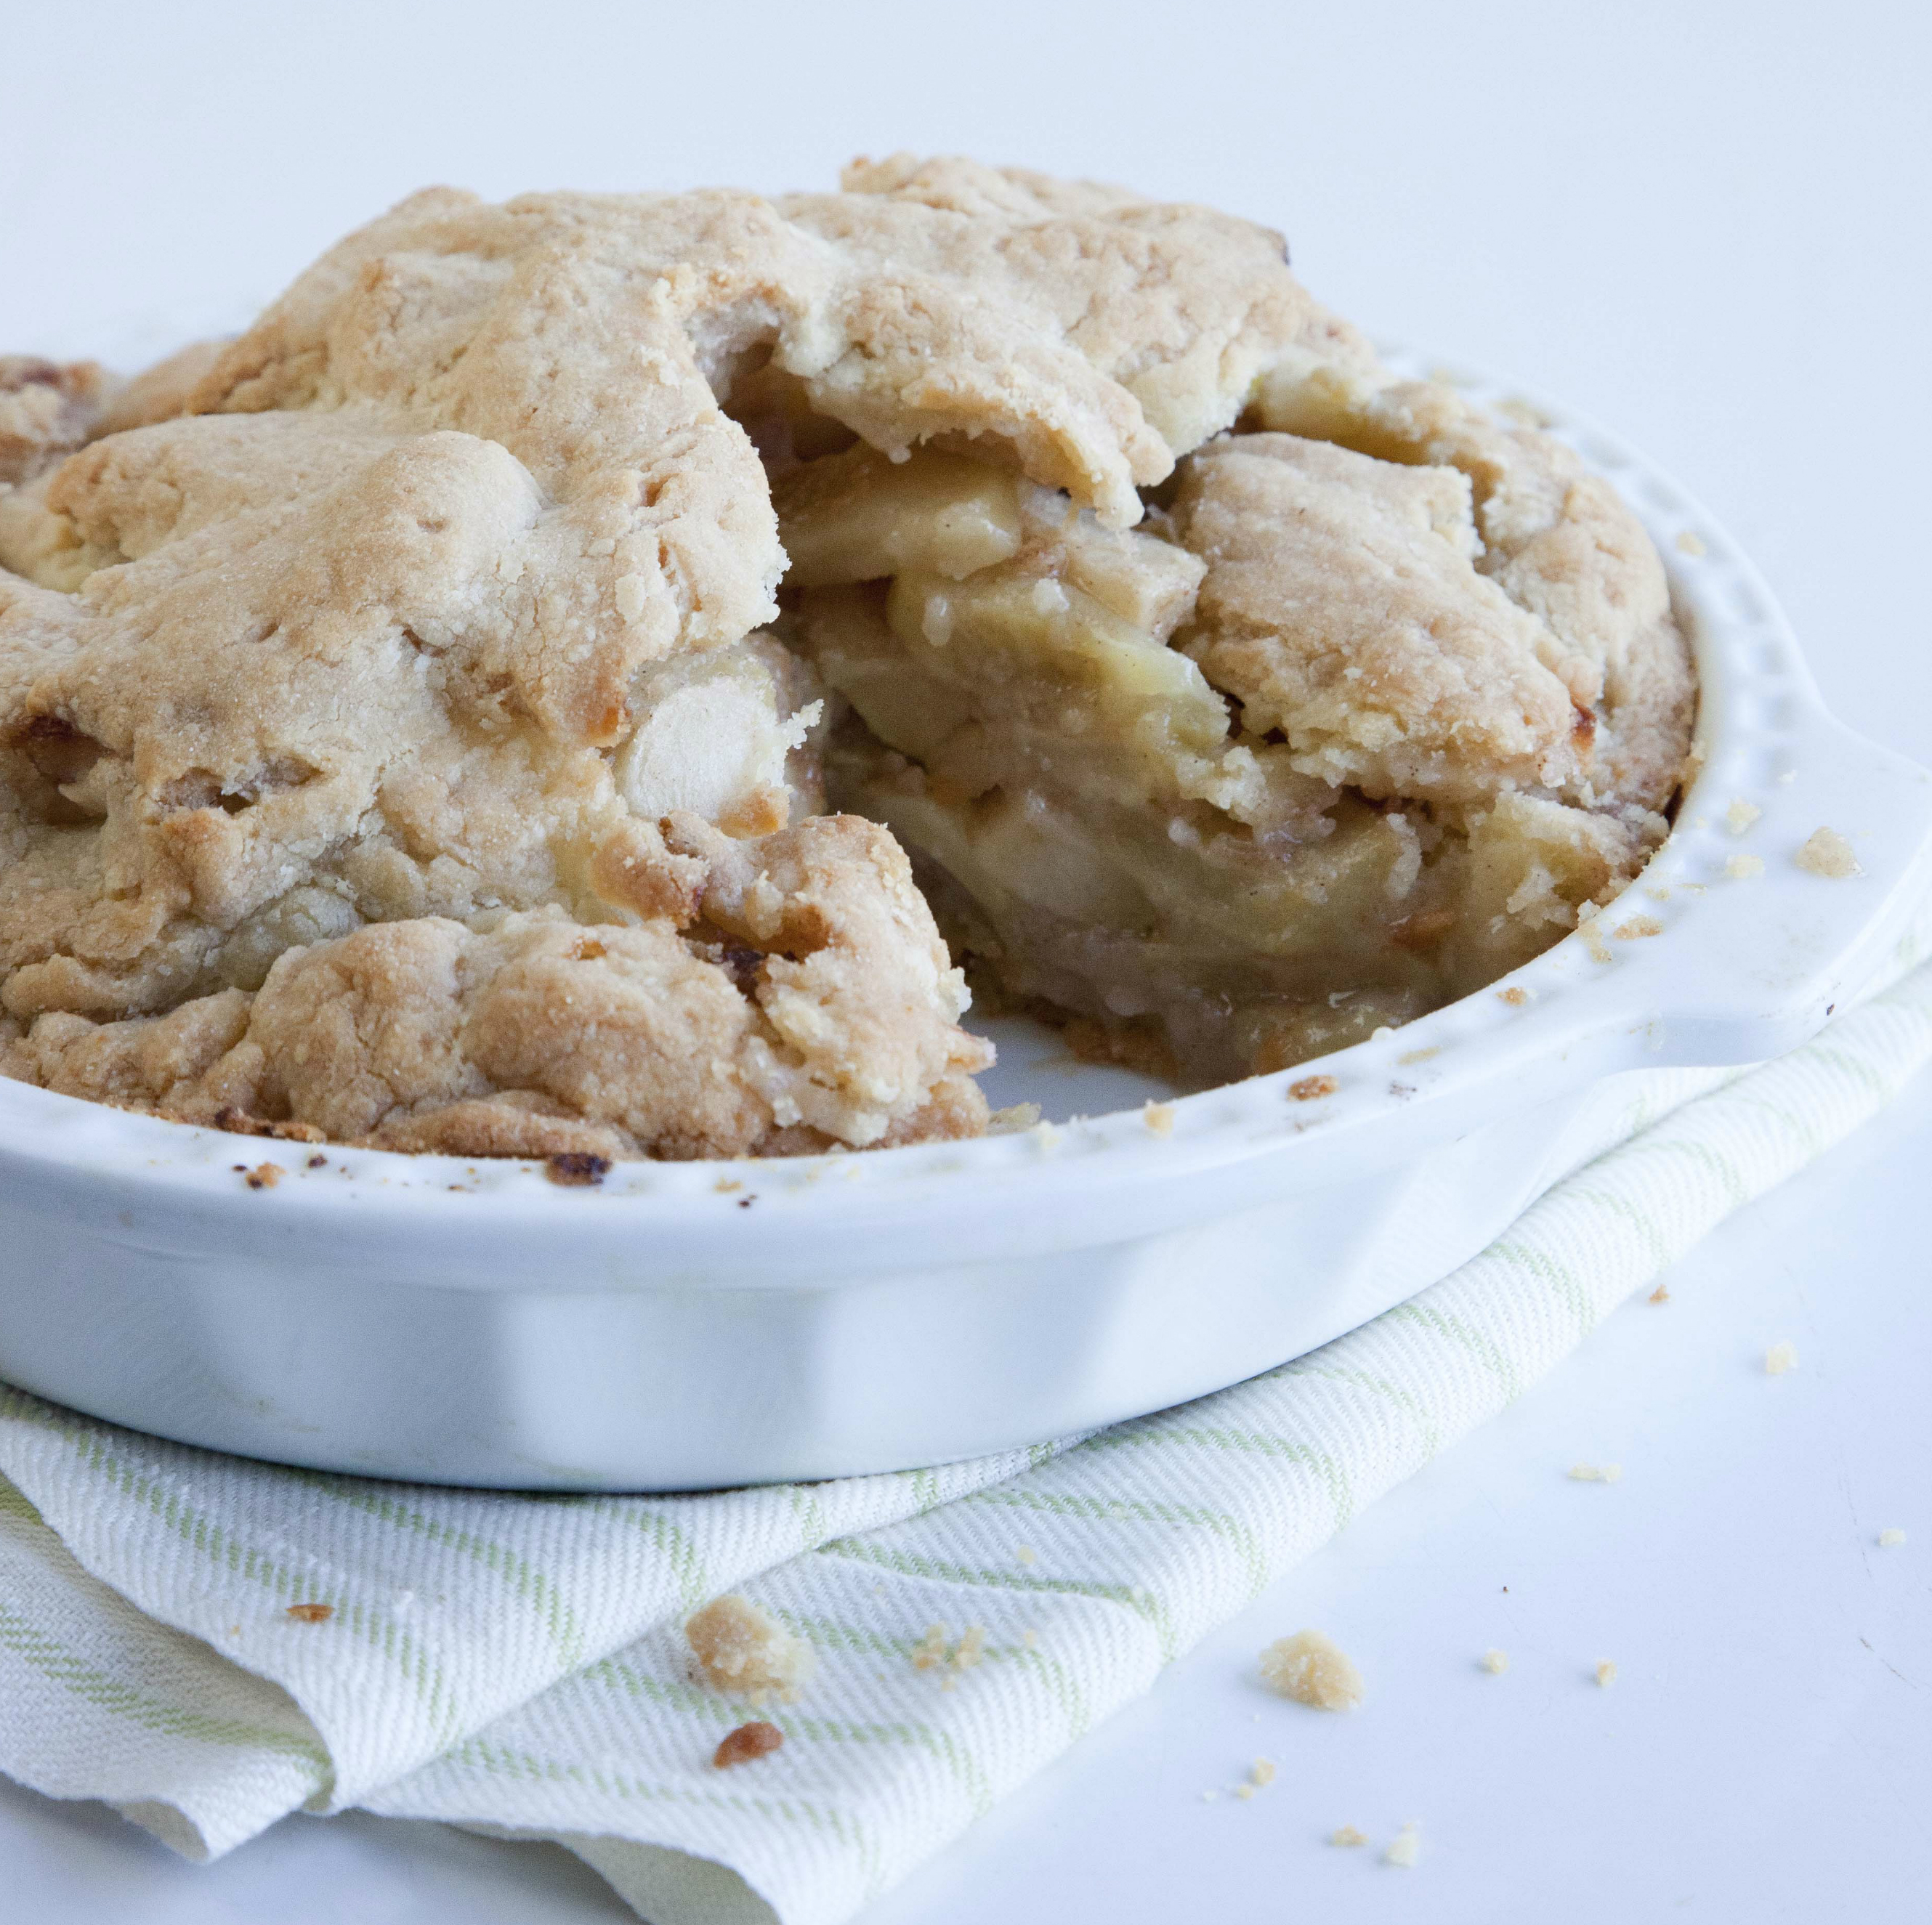 Recipe: Gluten-Free Apple Pie | KCRW Good Food